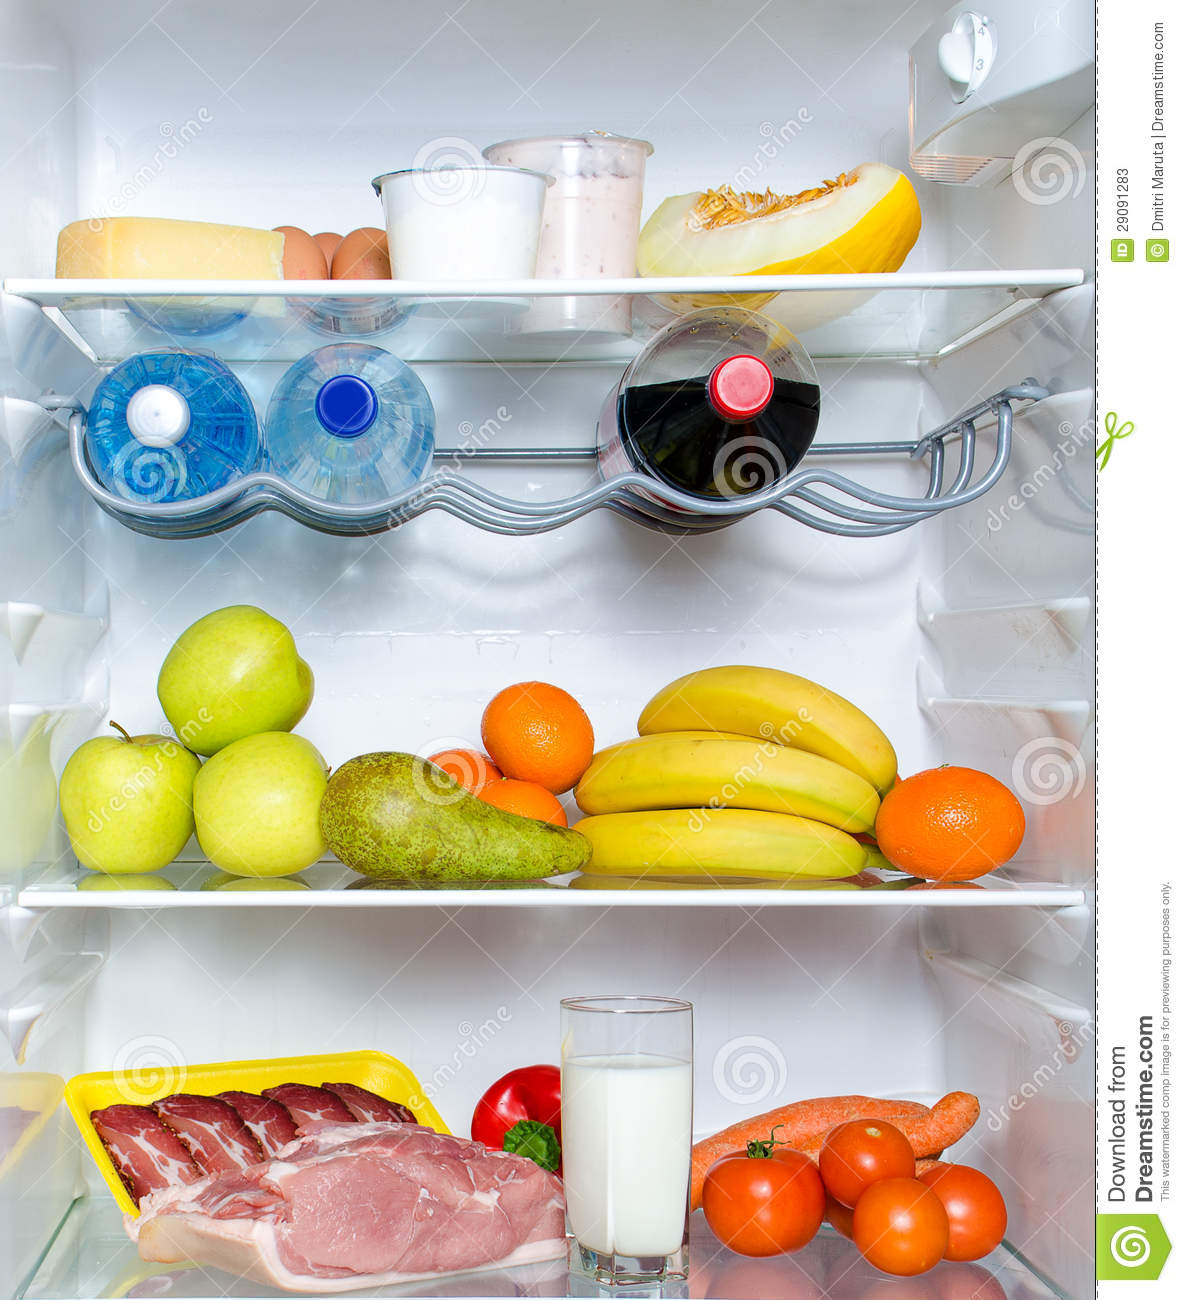 Open Fridge Full Of Fruits Stock Image Image Of Food 29091283